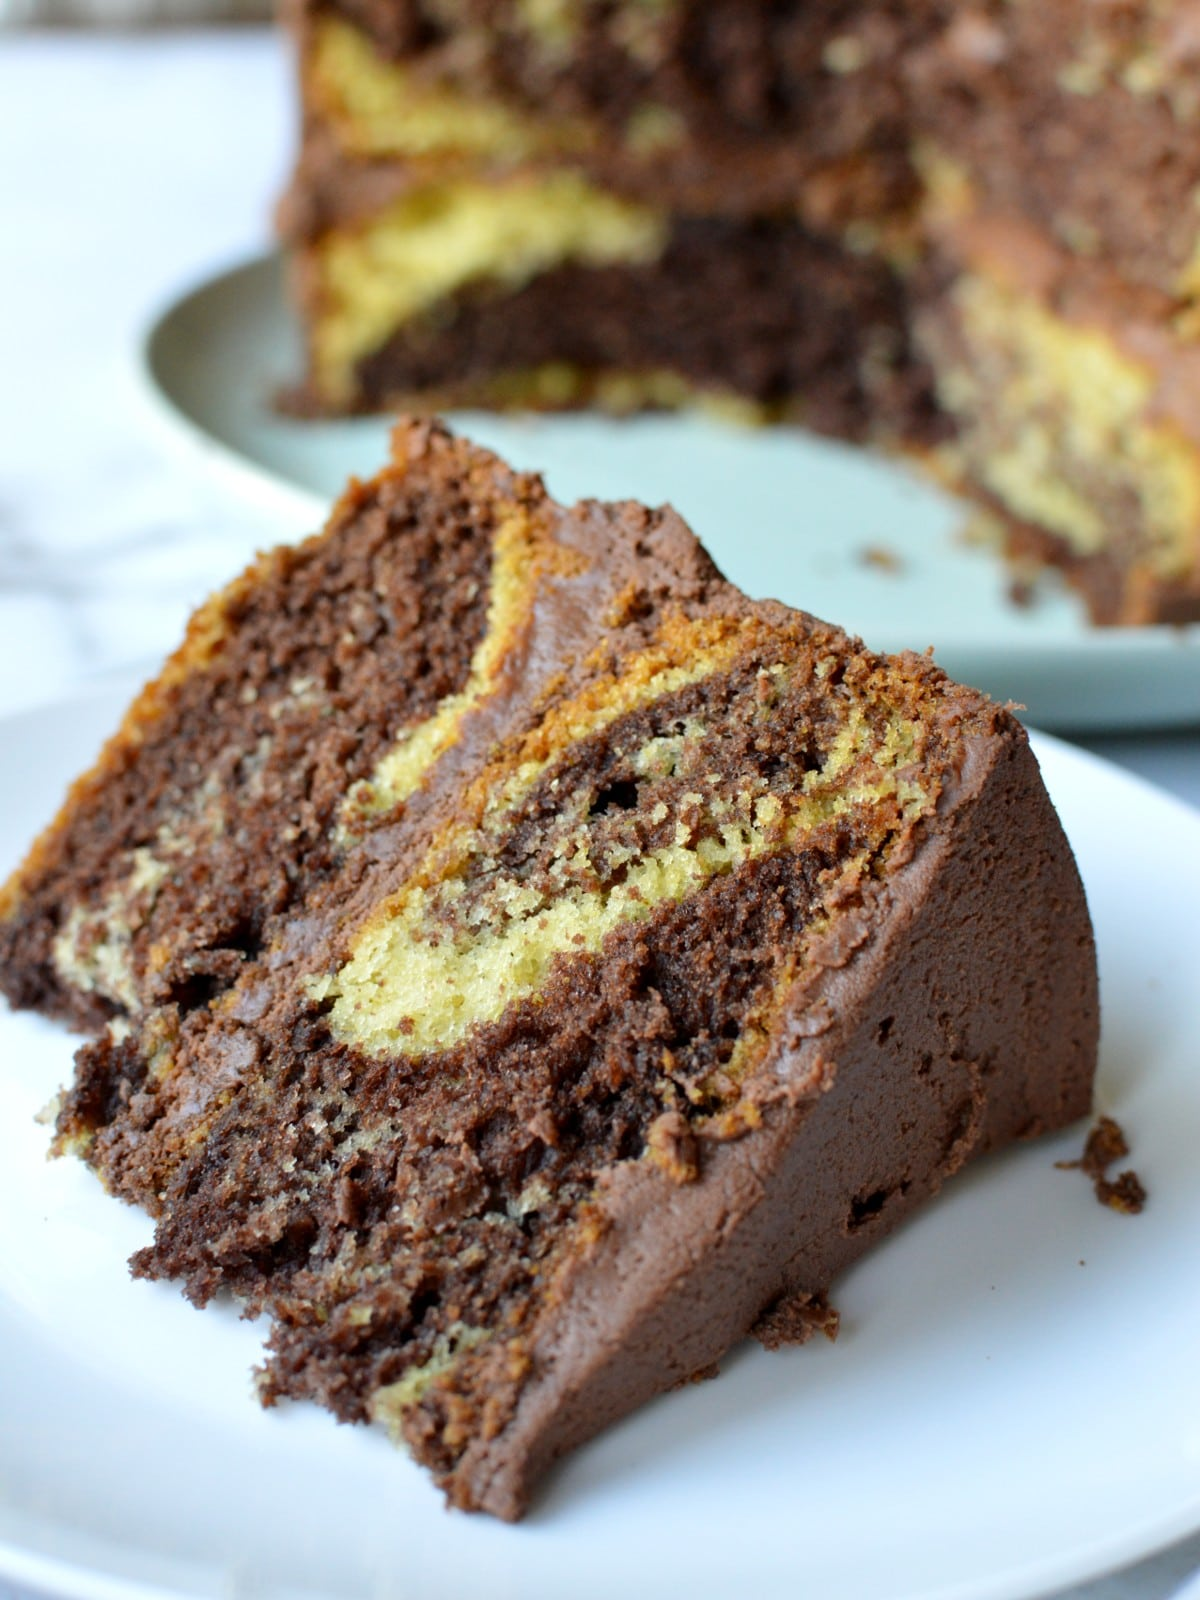 a slice of homemade marble cake